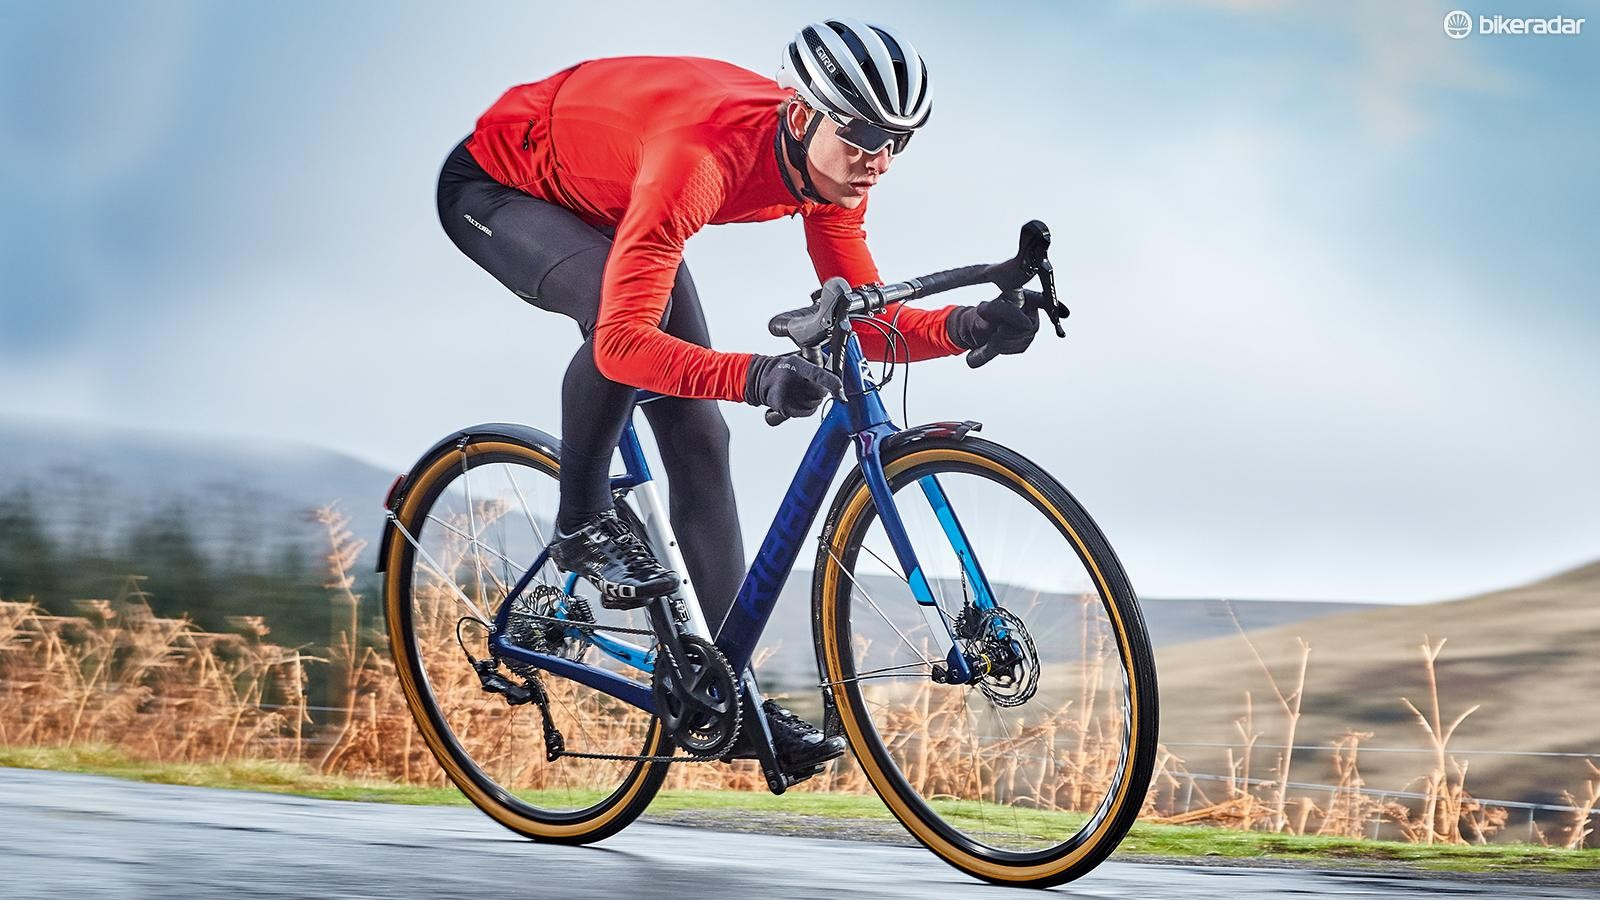 The Ribble delivers a great ride. It's impressive how smooth it felt